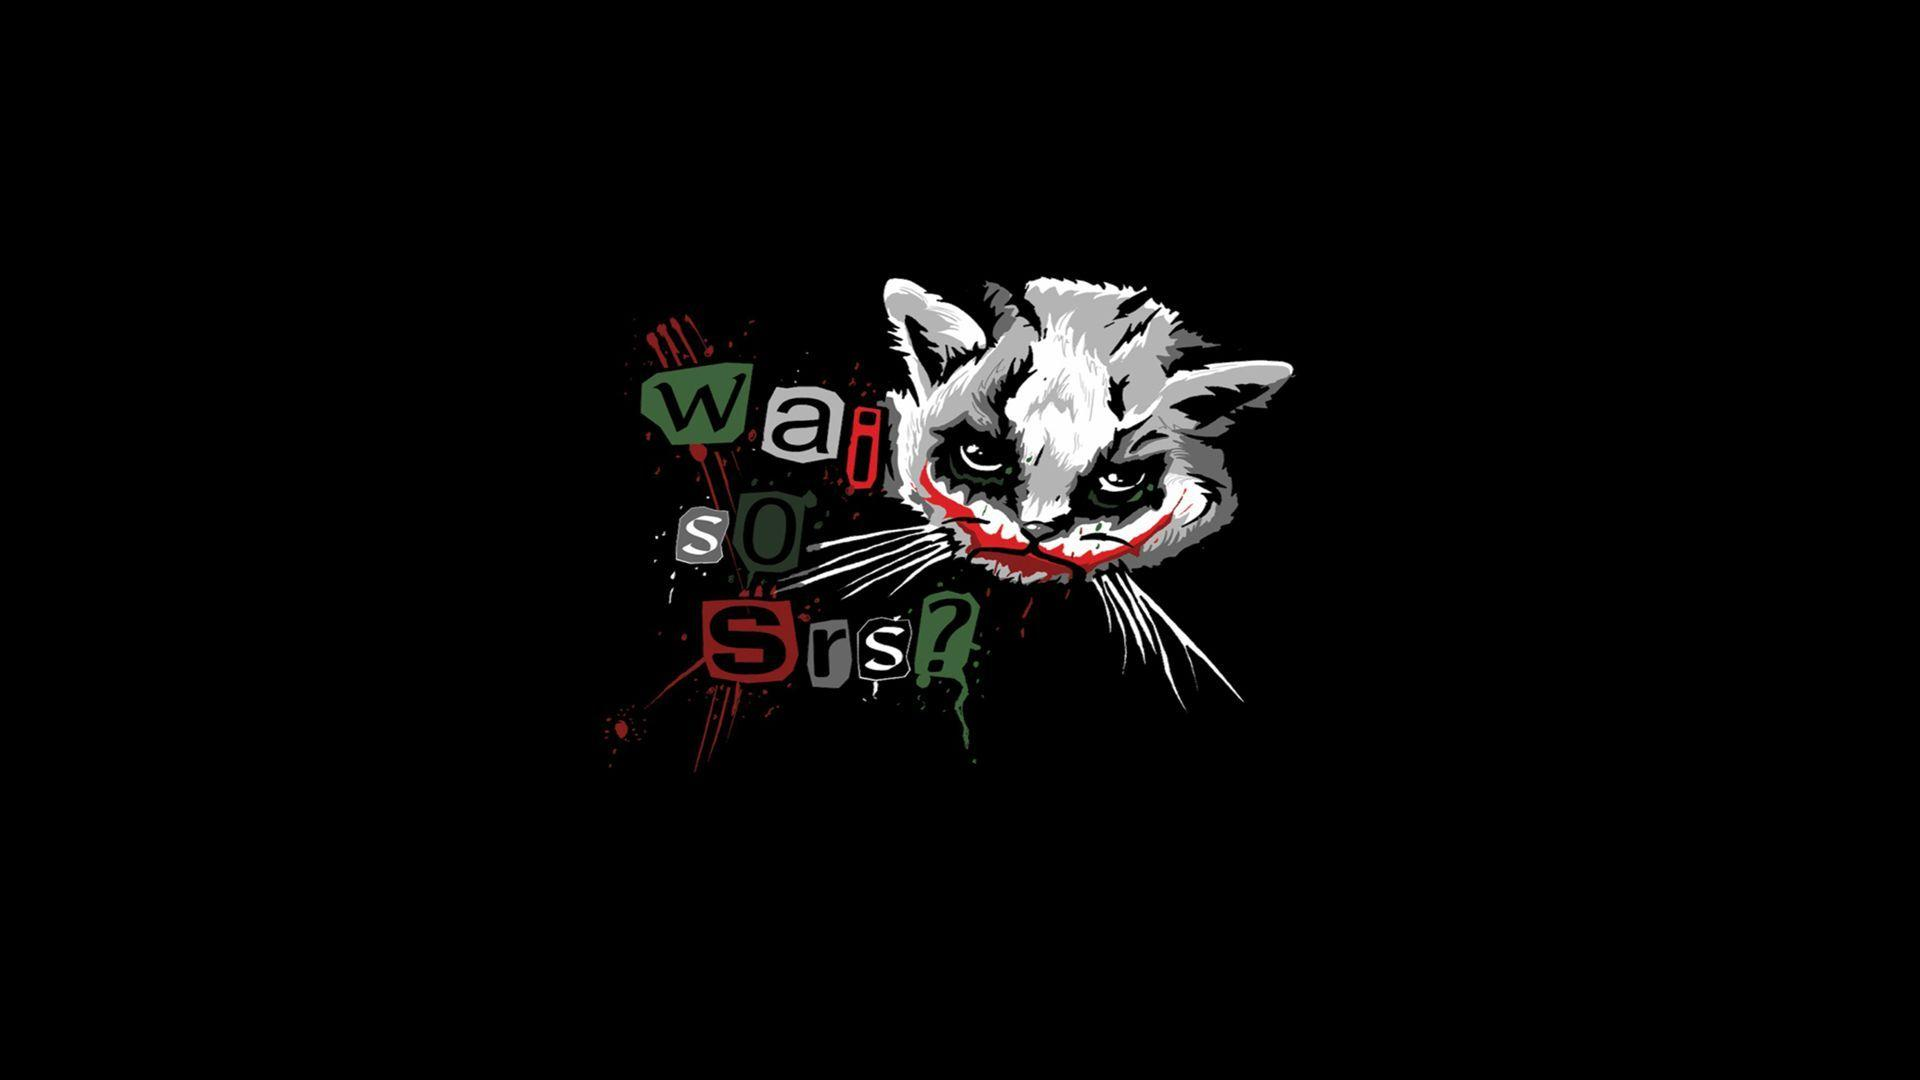 Joker Why So Serious Wallpaper Free Download 1920x1080PX